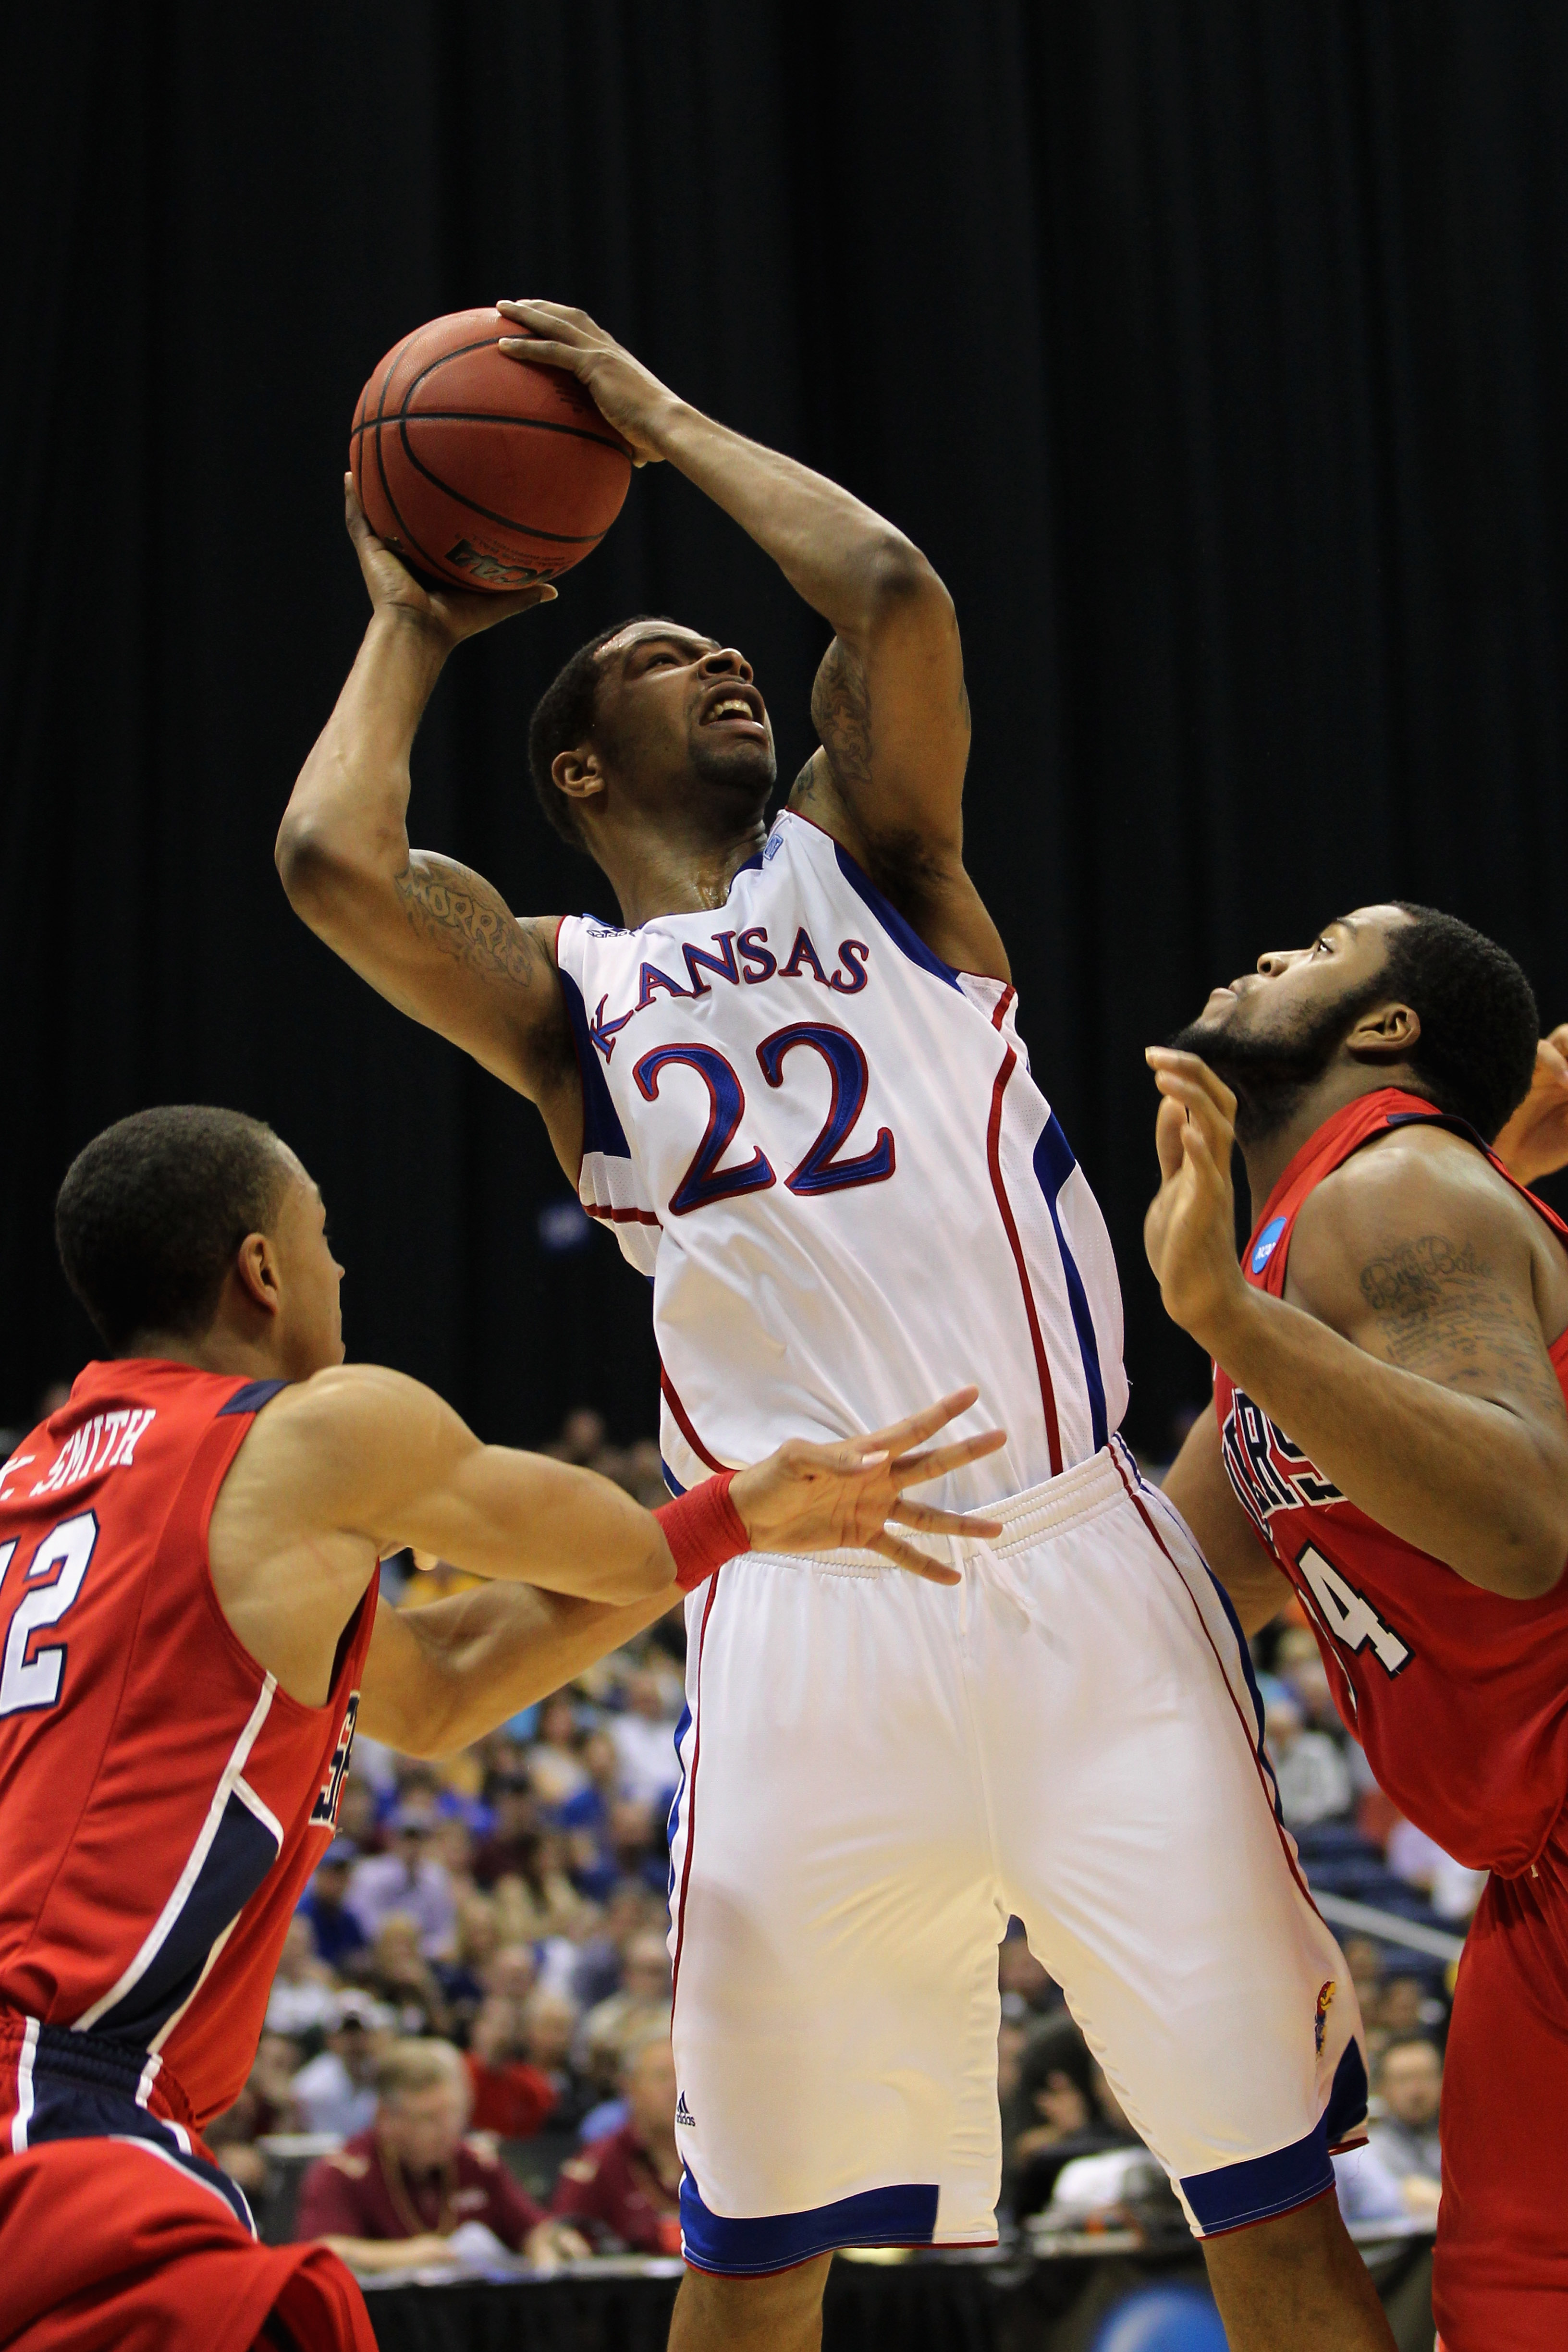 SAN ANTONIO, TX - MARCH 25:  Marcus Morris #22 of the Kansas Jayhawks shoots against the Richmond Spiders during the southwest regional of the 2011 NCAA men's basketball tournament at the Alamodome on March 25, 2011 in San Antonio, Texas.  (Photo by Jamie